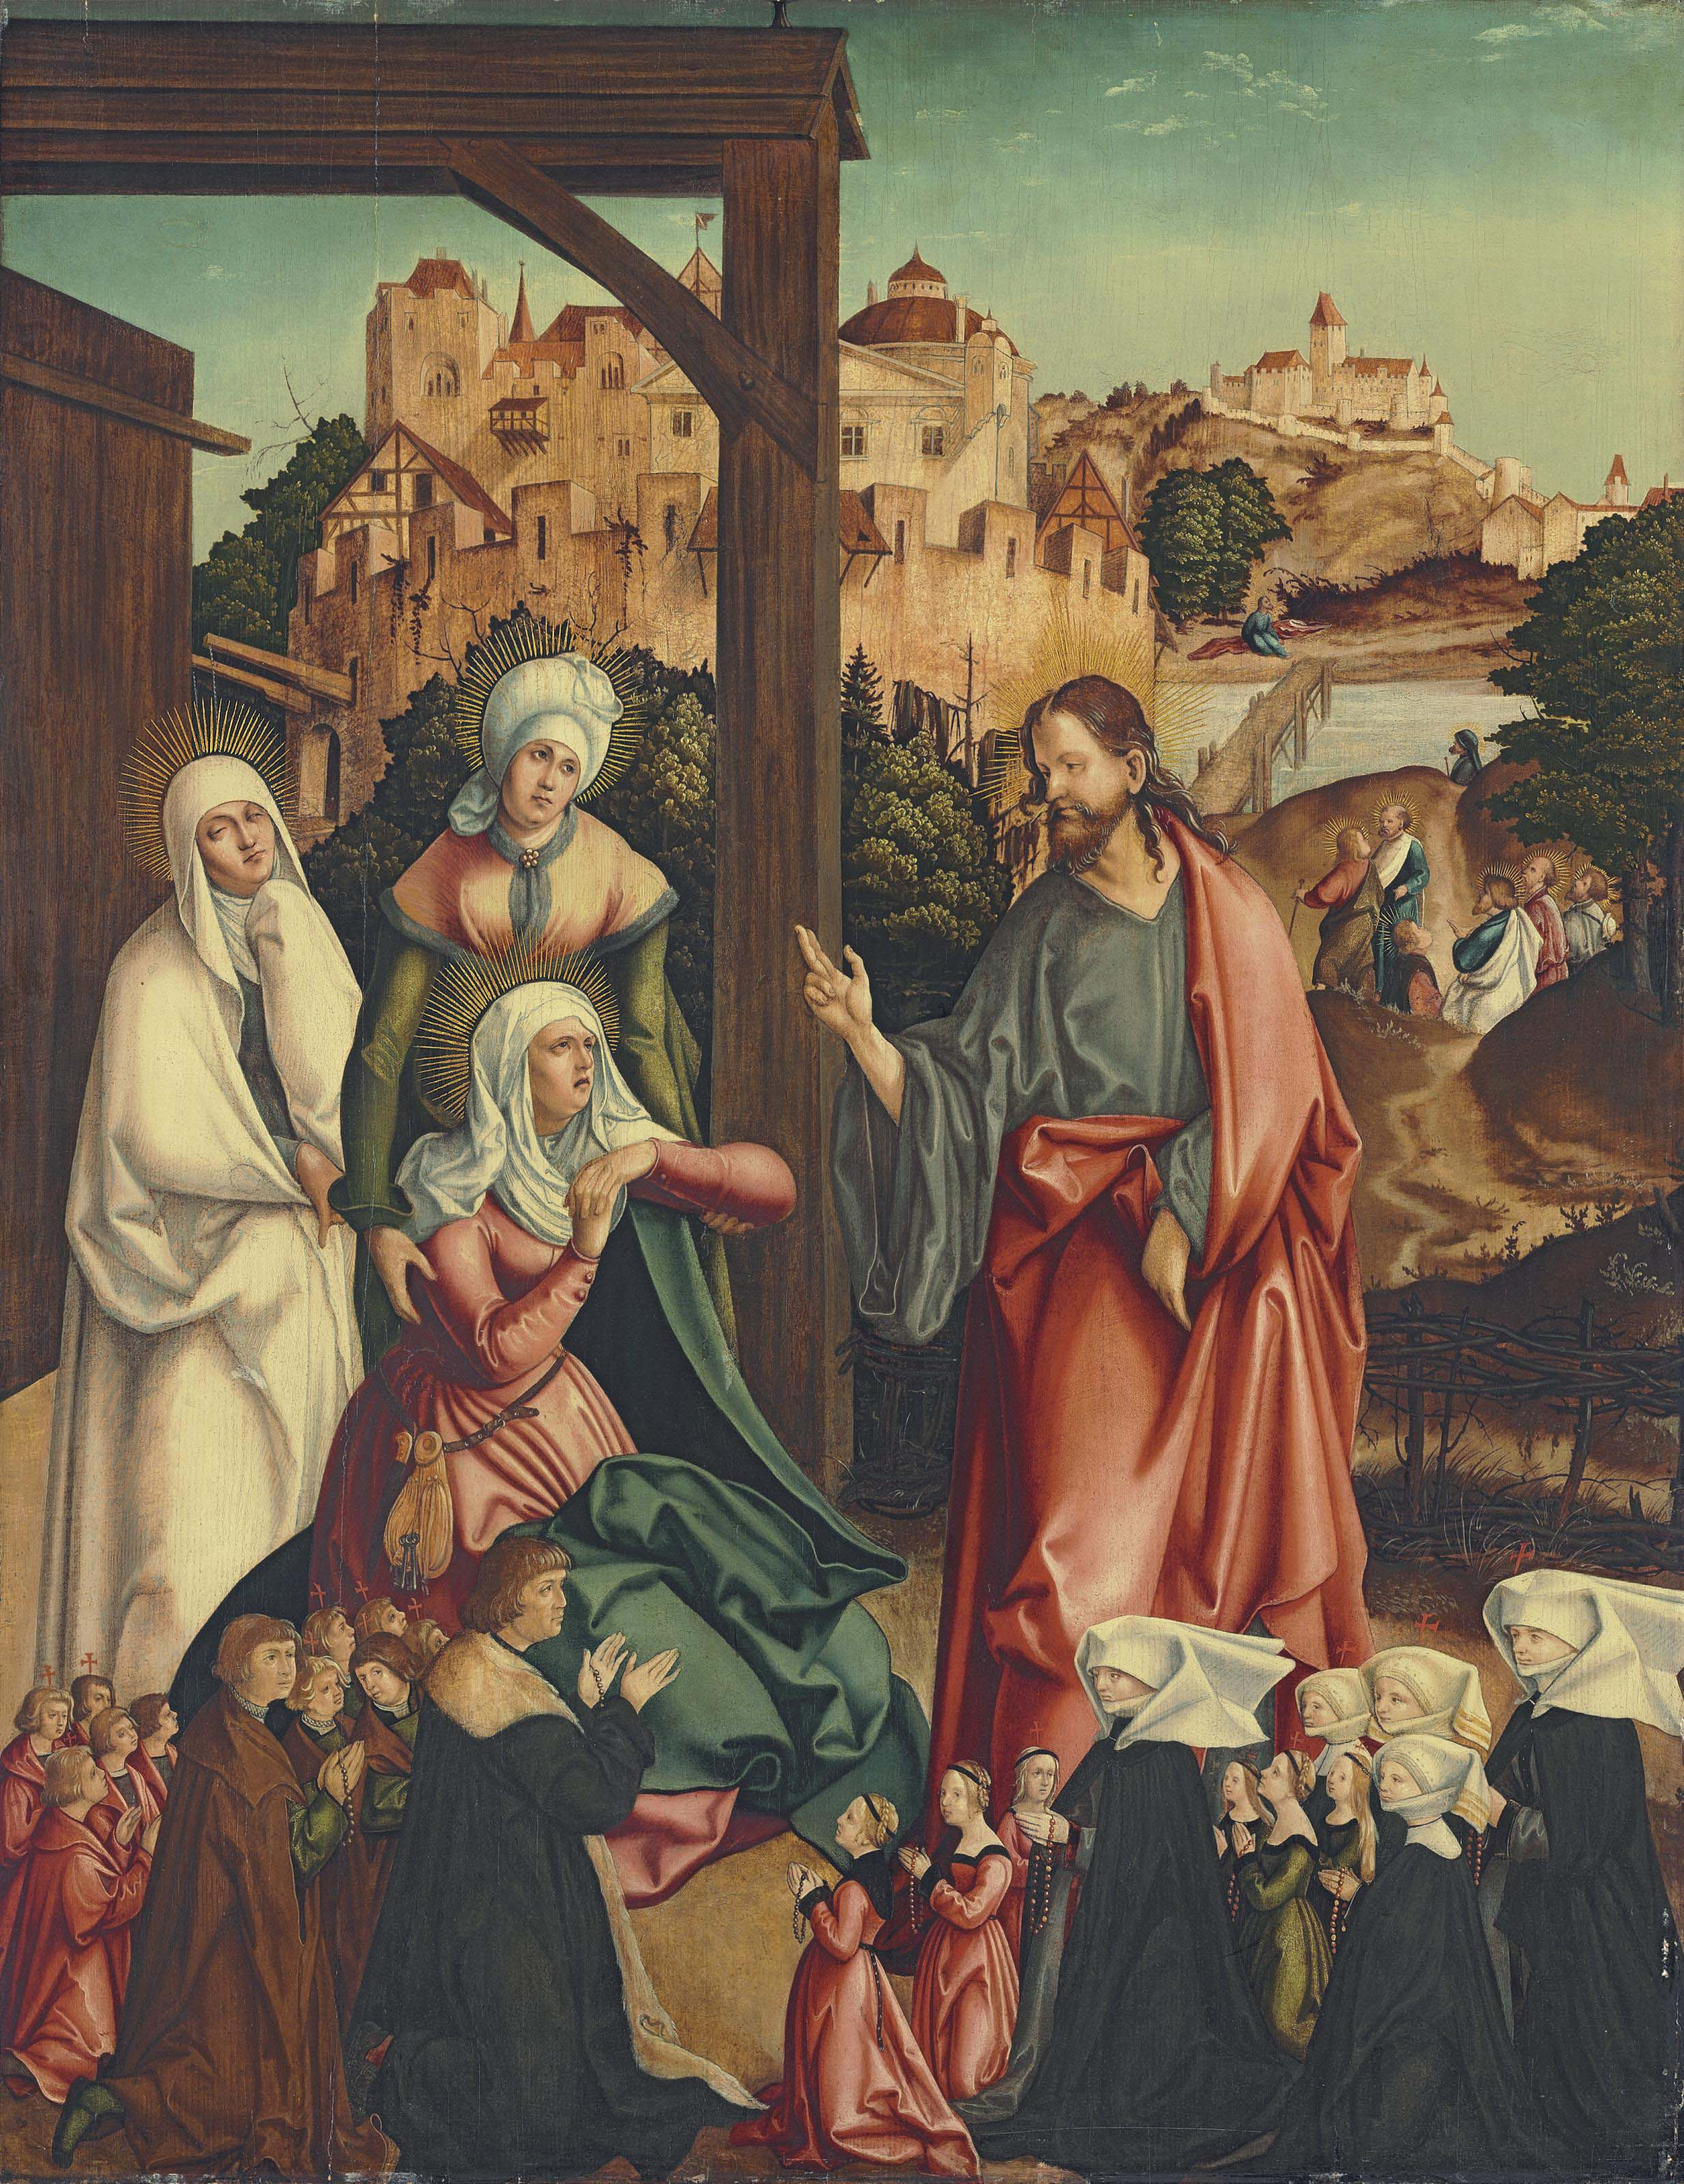 Christ taking leave of his Mother, with a donor family kneeling in the foreground